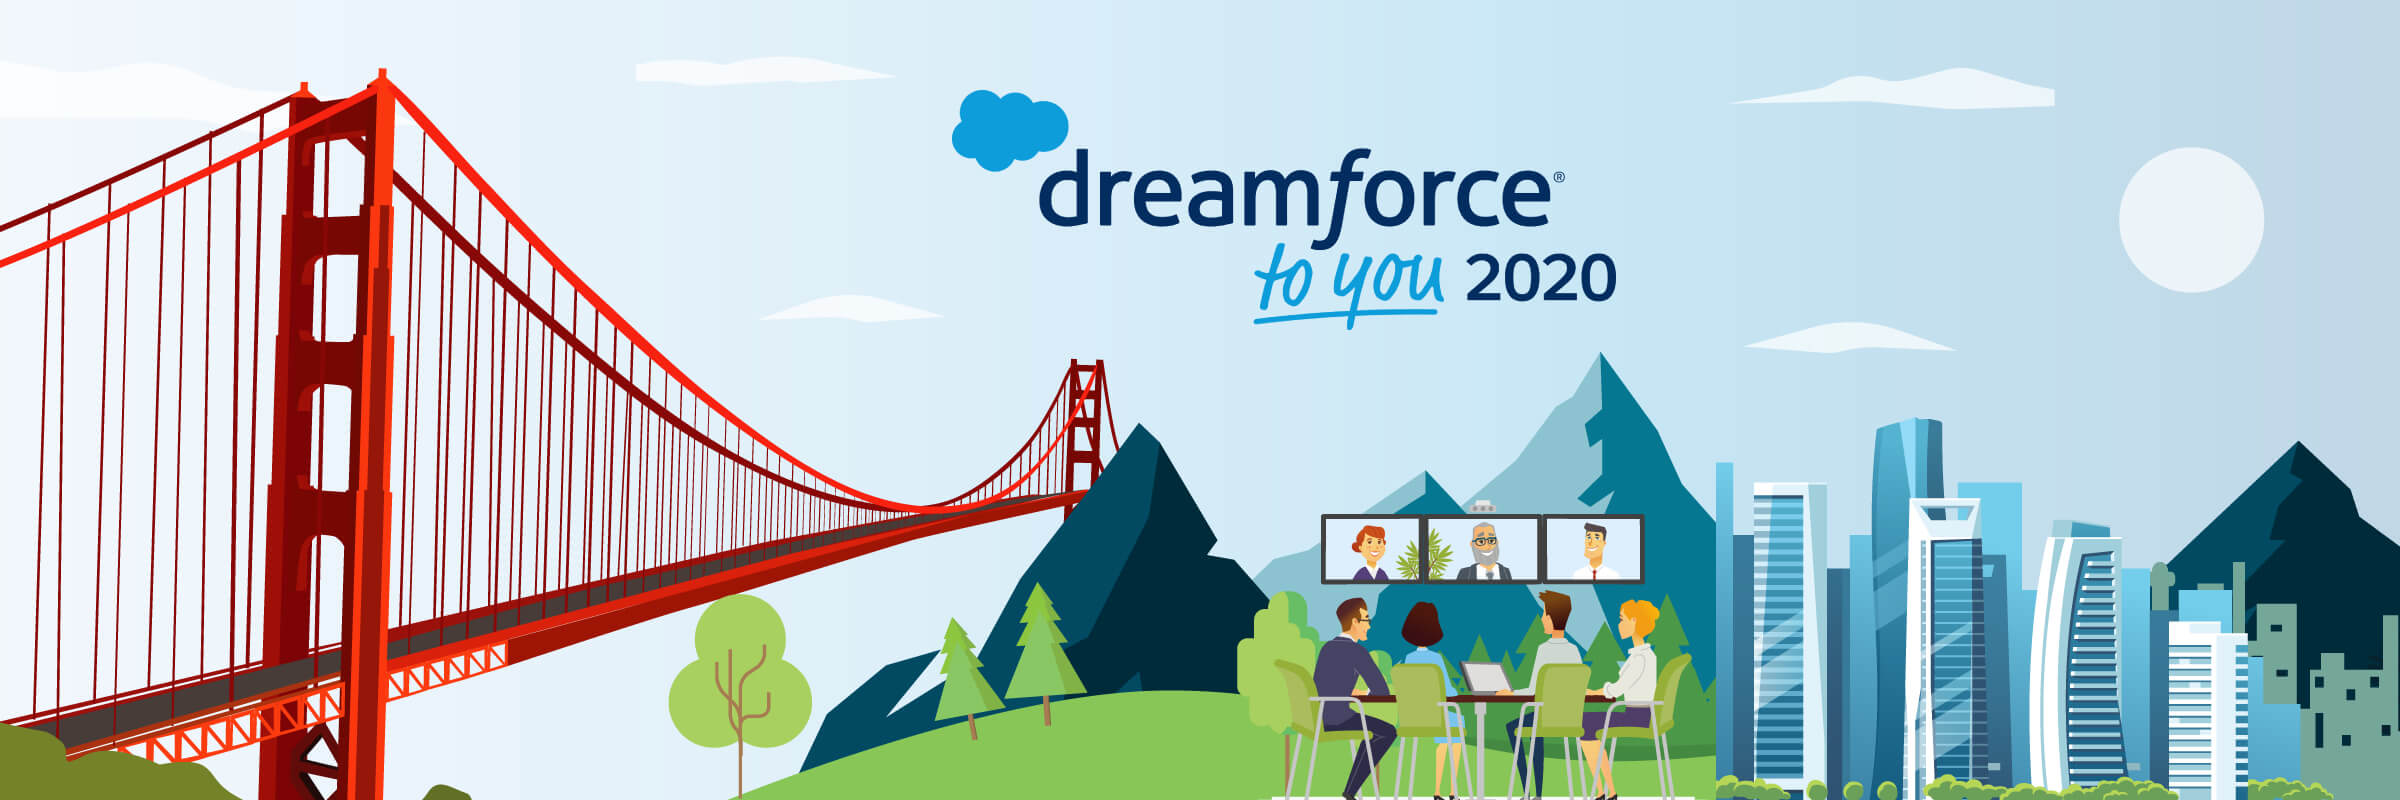 dreamforce-2020